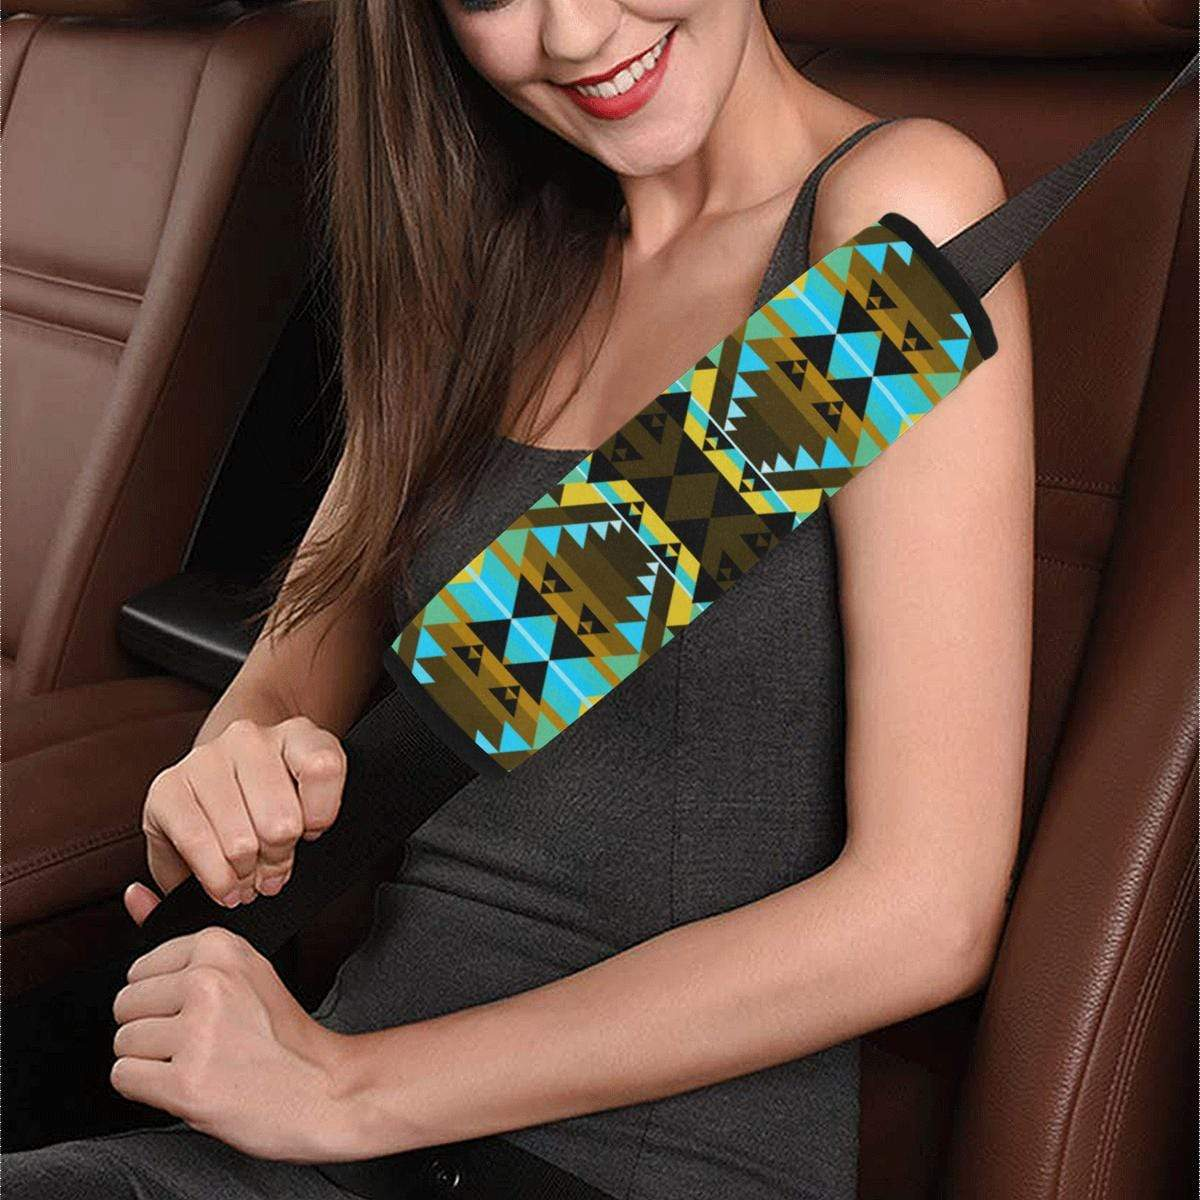 Writing on Stone Broken Lodge Car Seat Belt Cover 7''x12.6'' Car Seat Belt Cover 7''x12.6'' e-joyer